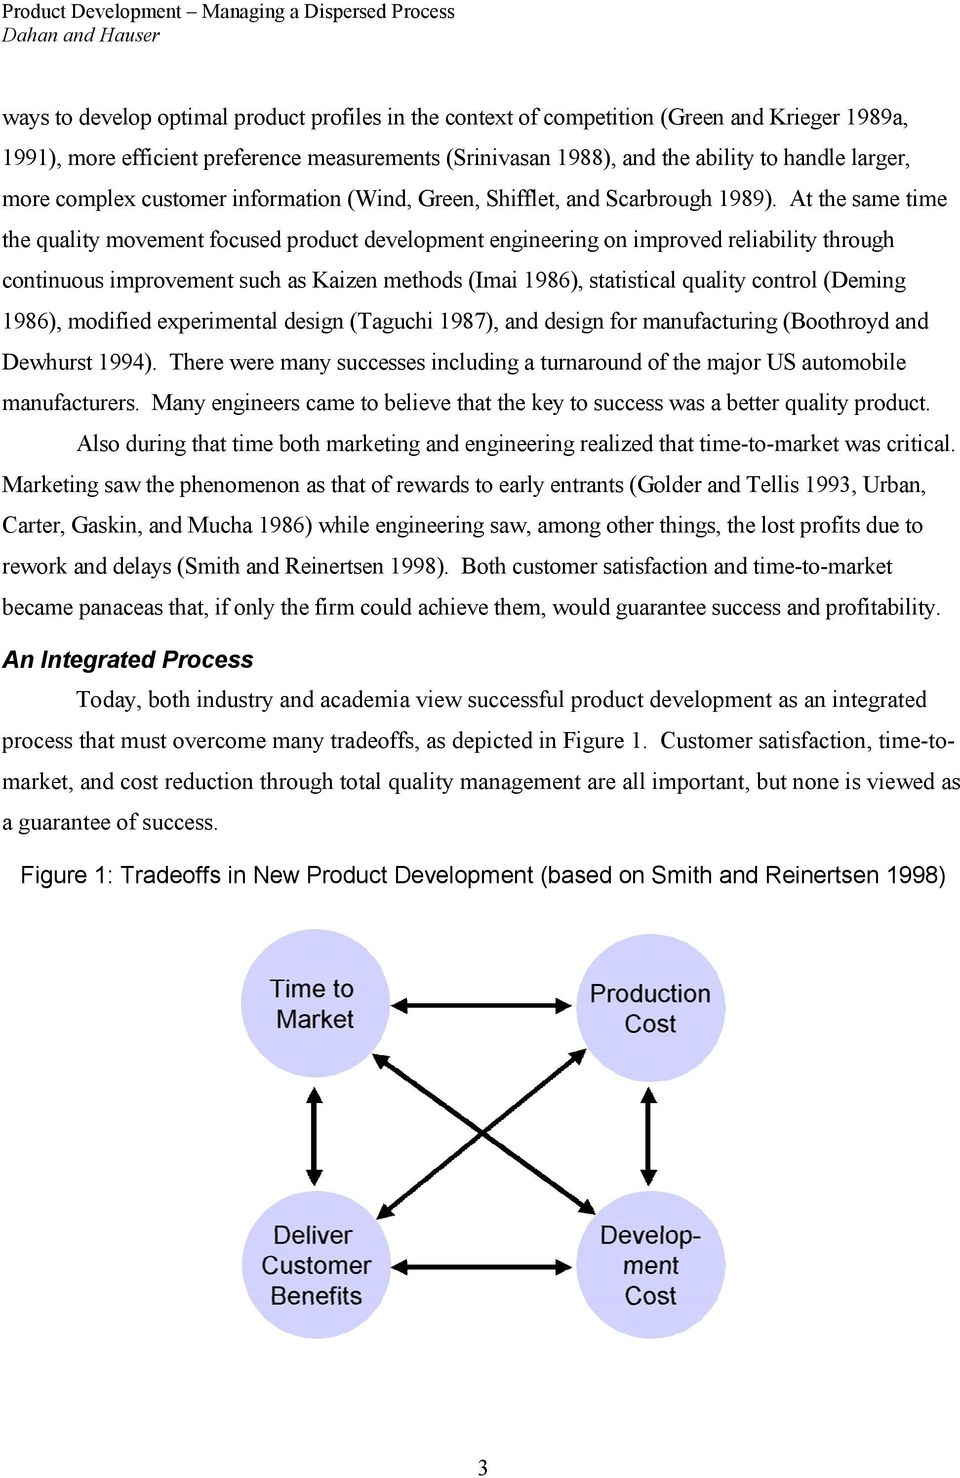 At the same time the quality movement focused product development engineering on improved reliability through continuous improvement such as Kaizen methods (Imai 1986), statistical quality control